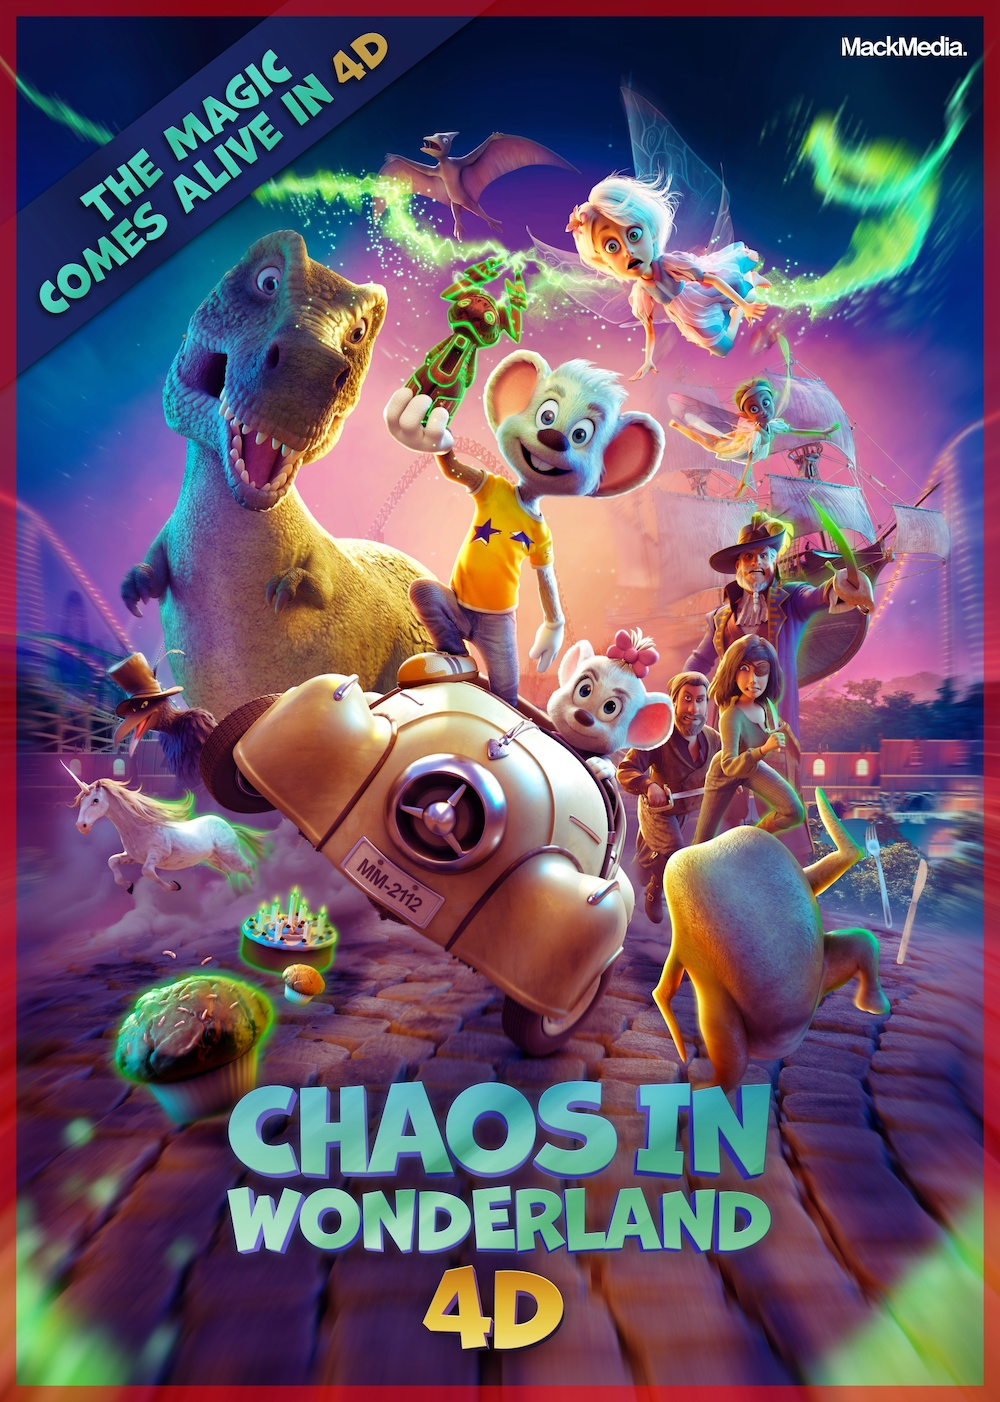 Michael Mack Animation 4D movies Holger Tappe